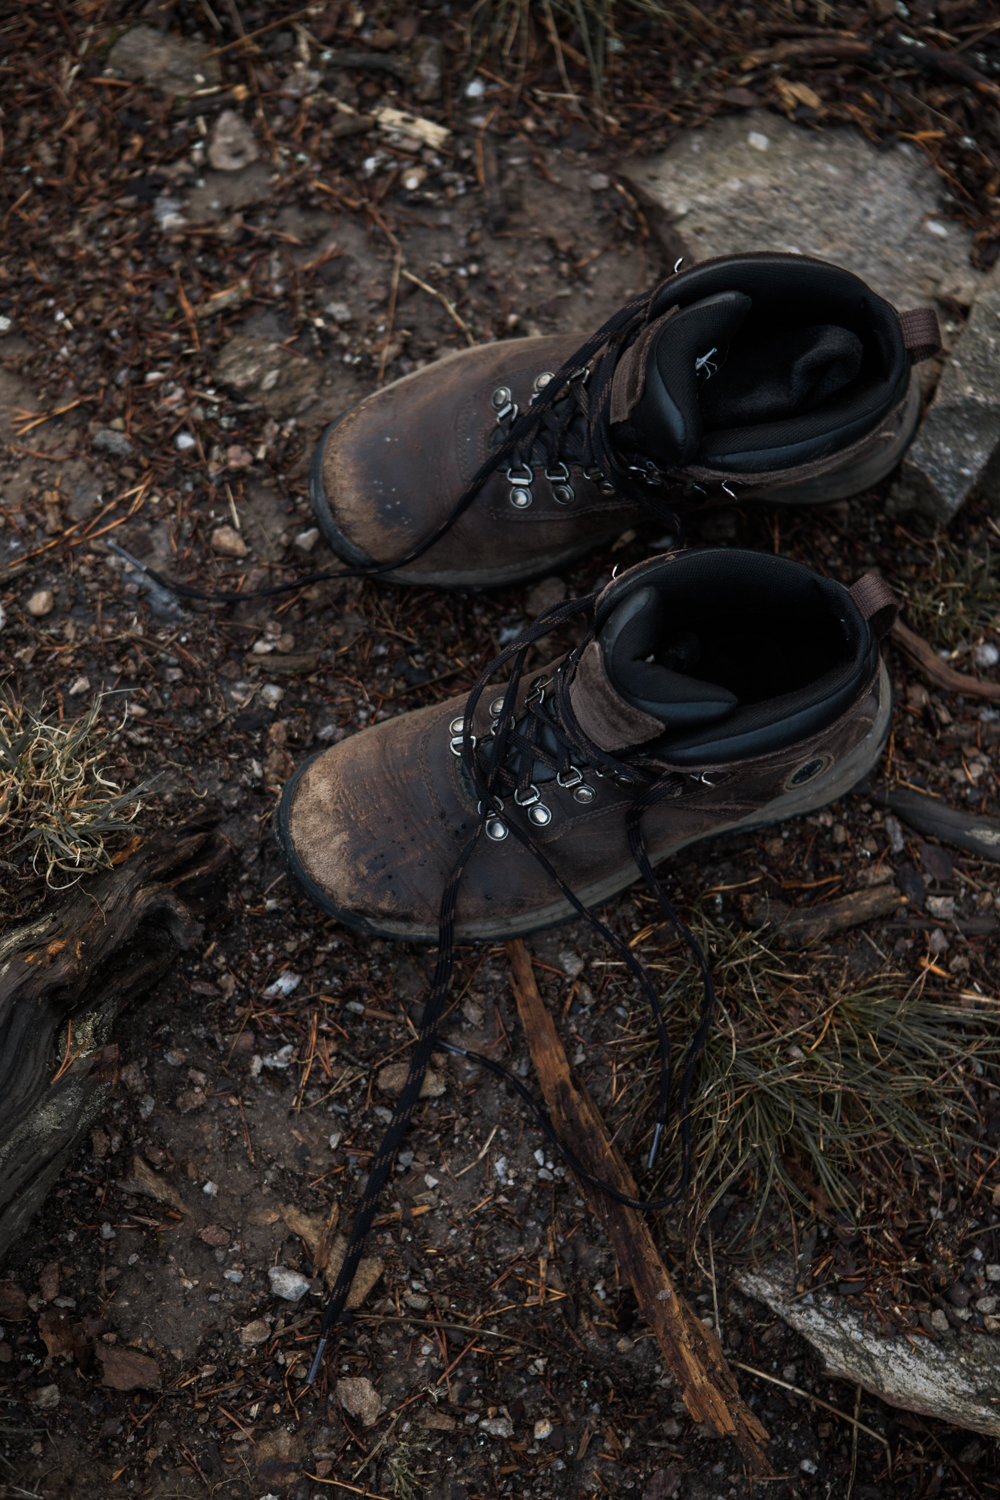 Cheaha State Park | Pulpit Rock | Hiking Boots